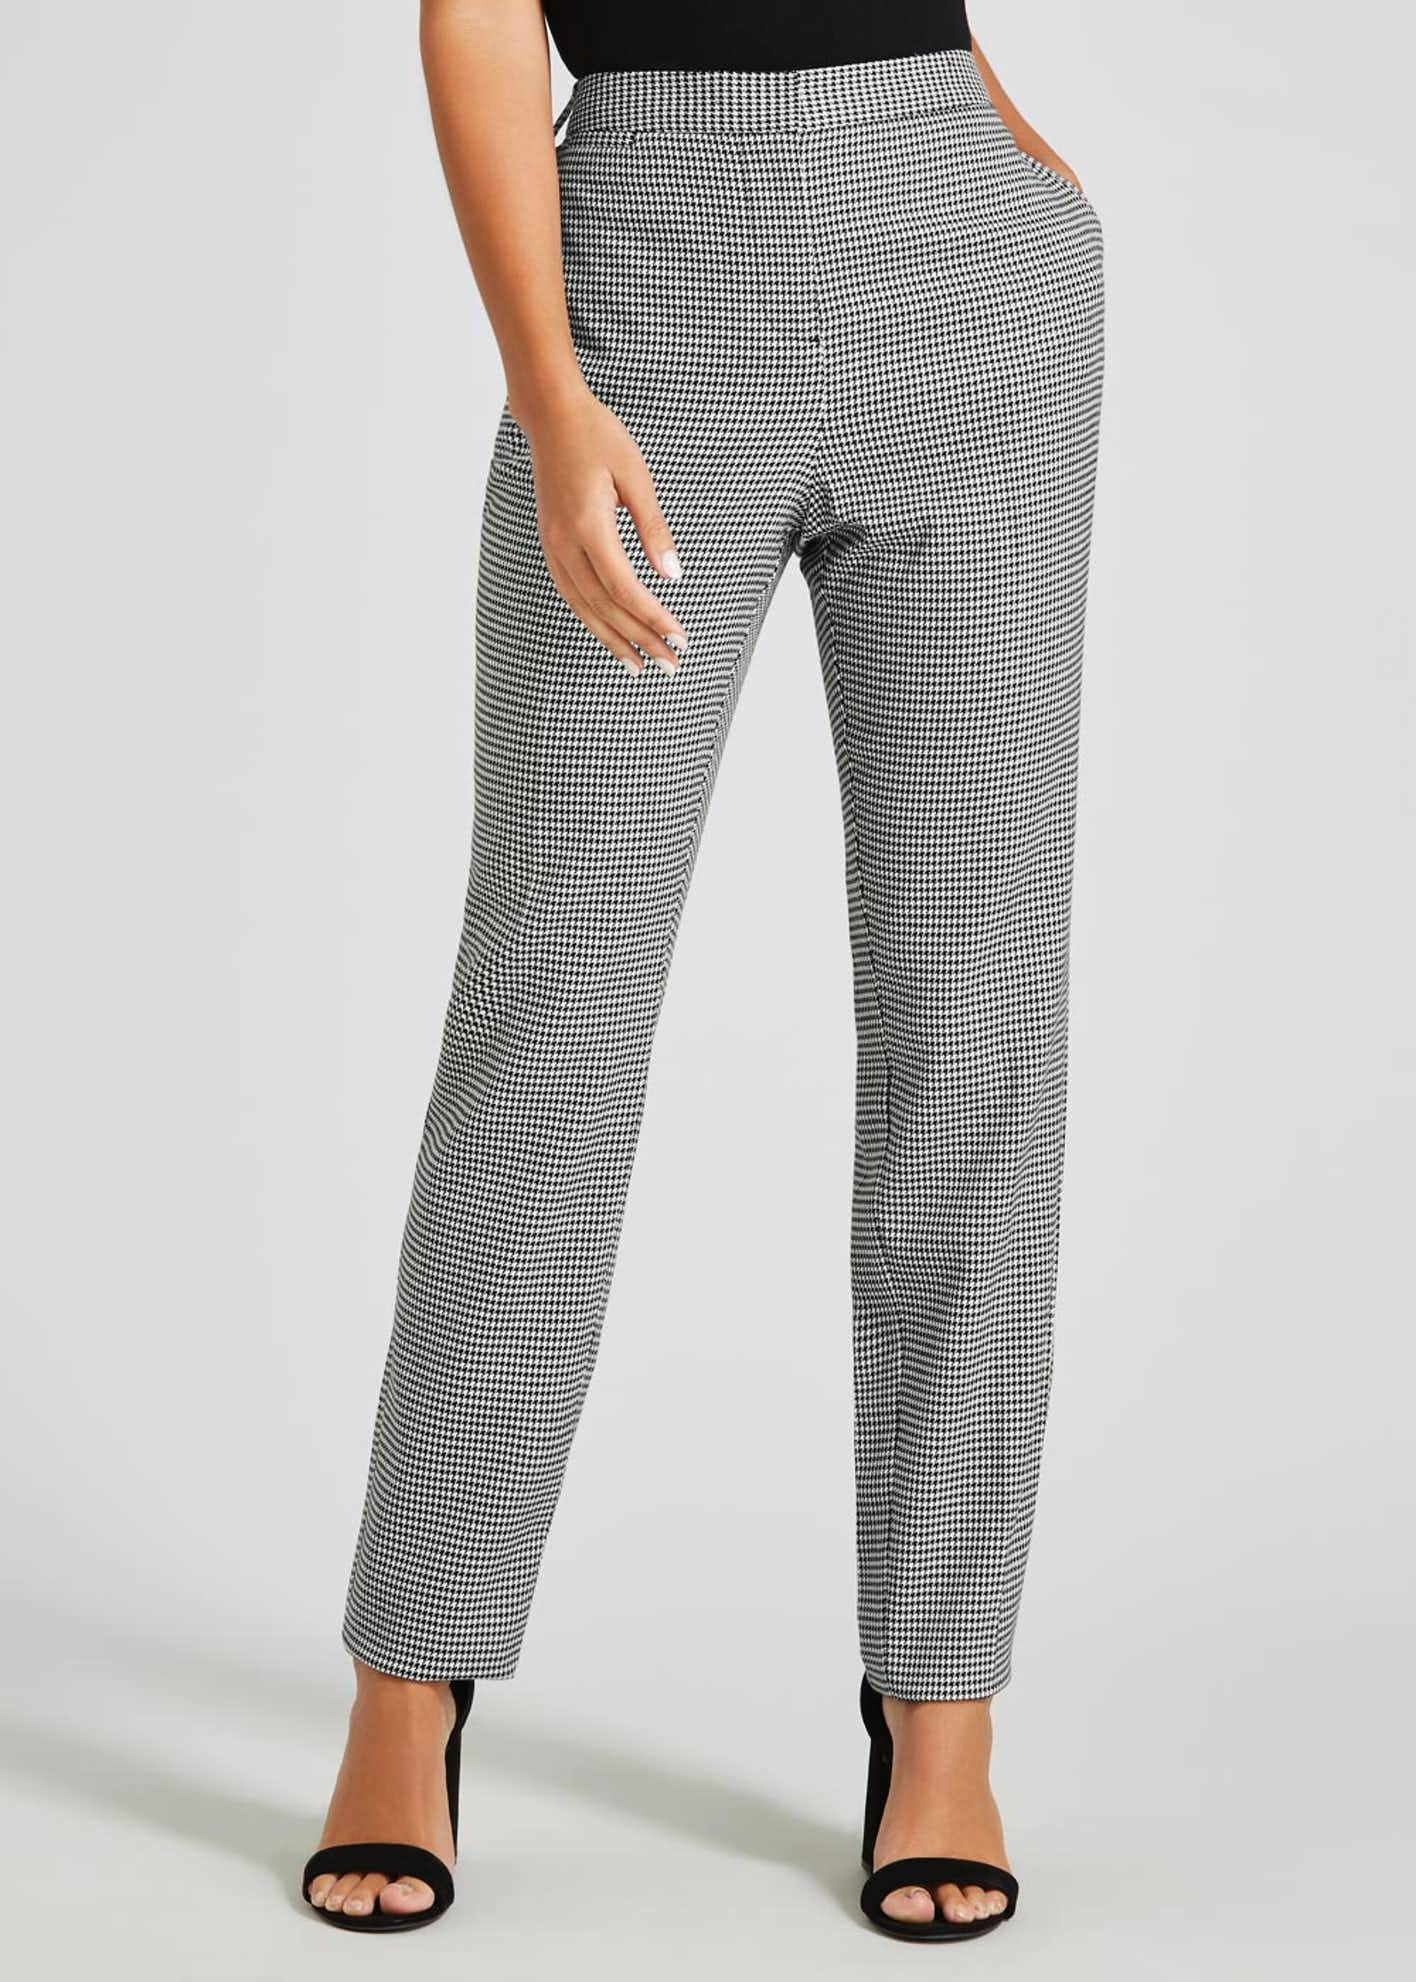 Dogtooth Check Slim Fit Trousers (31 Inch Leg)